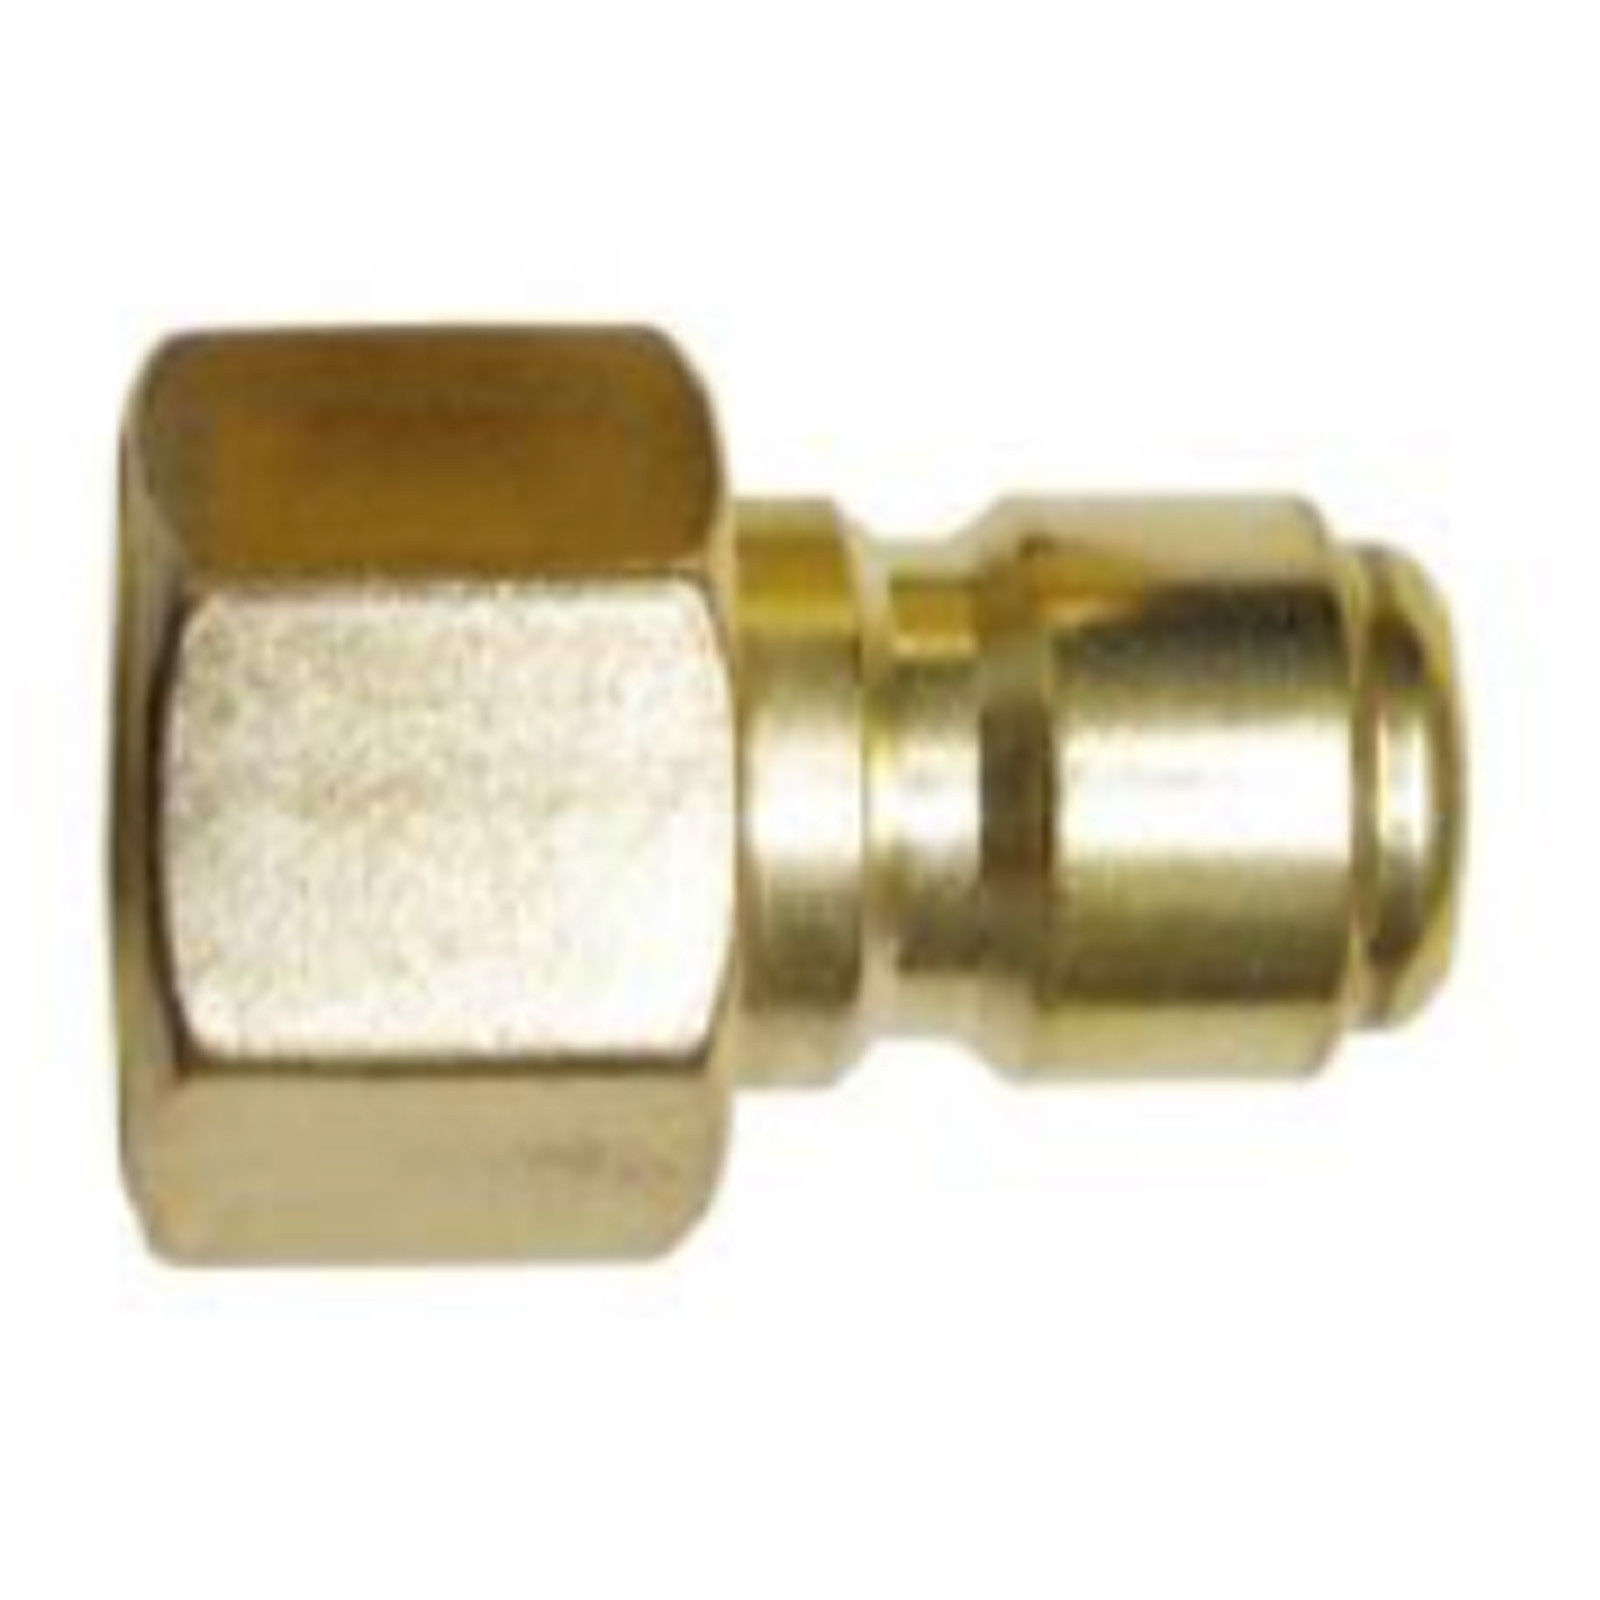 "PLUG 3/8"" FEMALE STAINLESS T1224 part# PPS6 by Proven P"